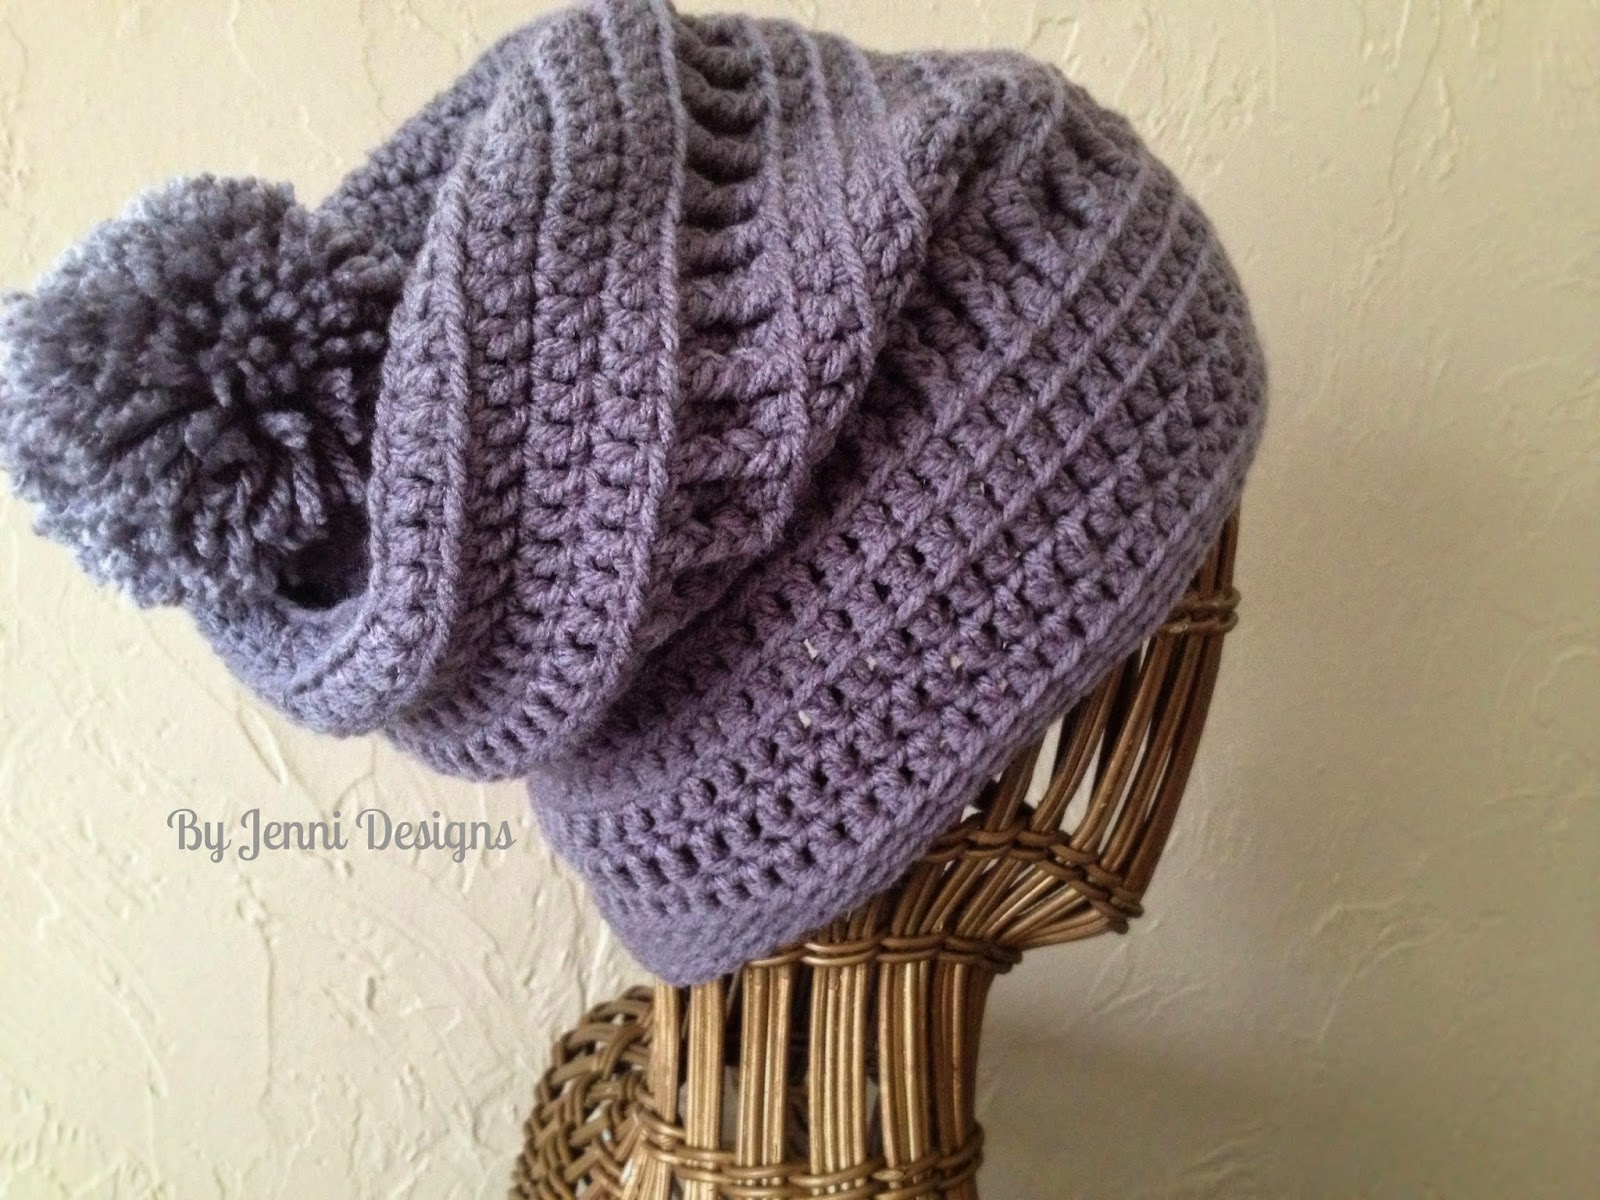 Free Crochet Pattern For Ladies Beanie Hat : By Jenni Designs: Free Crochet Pattern: Womens Slouchy ...